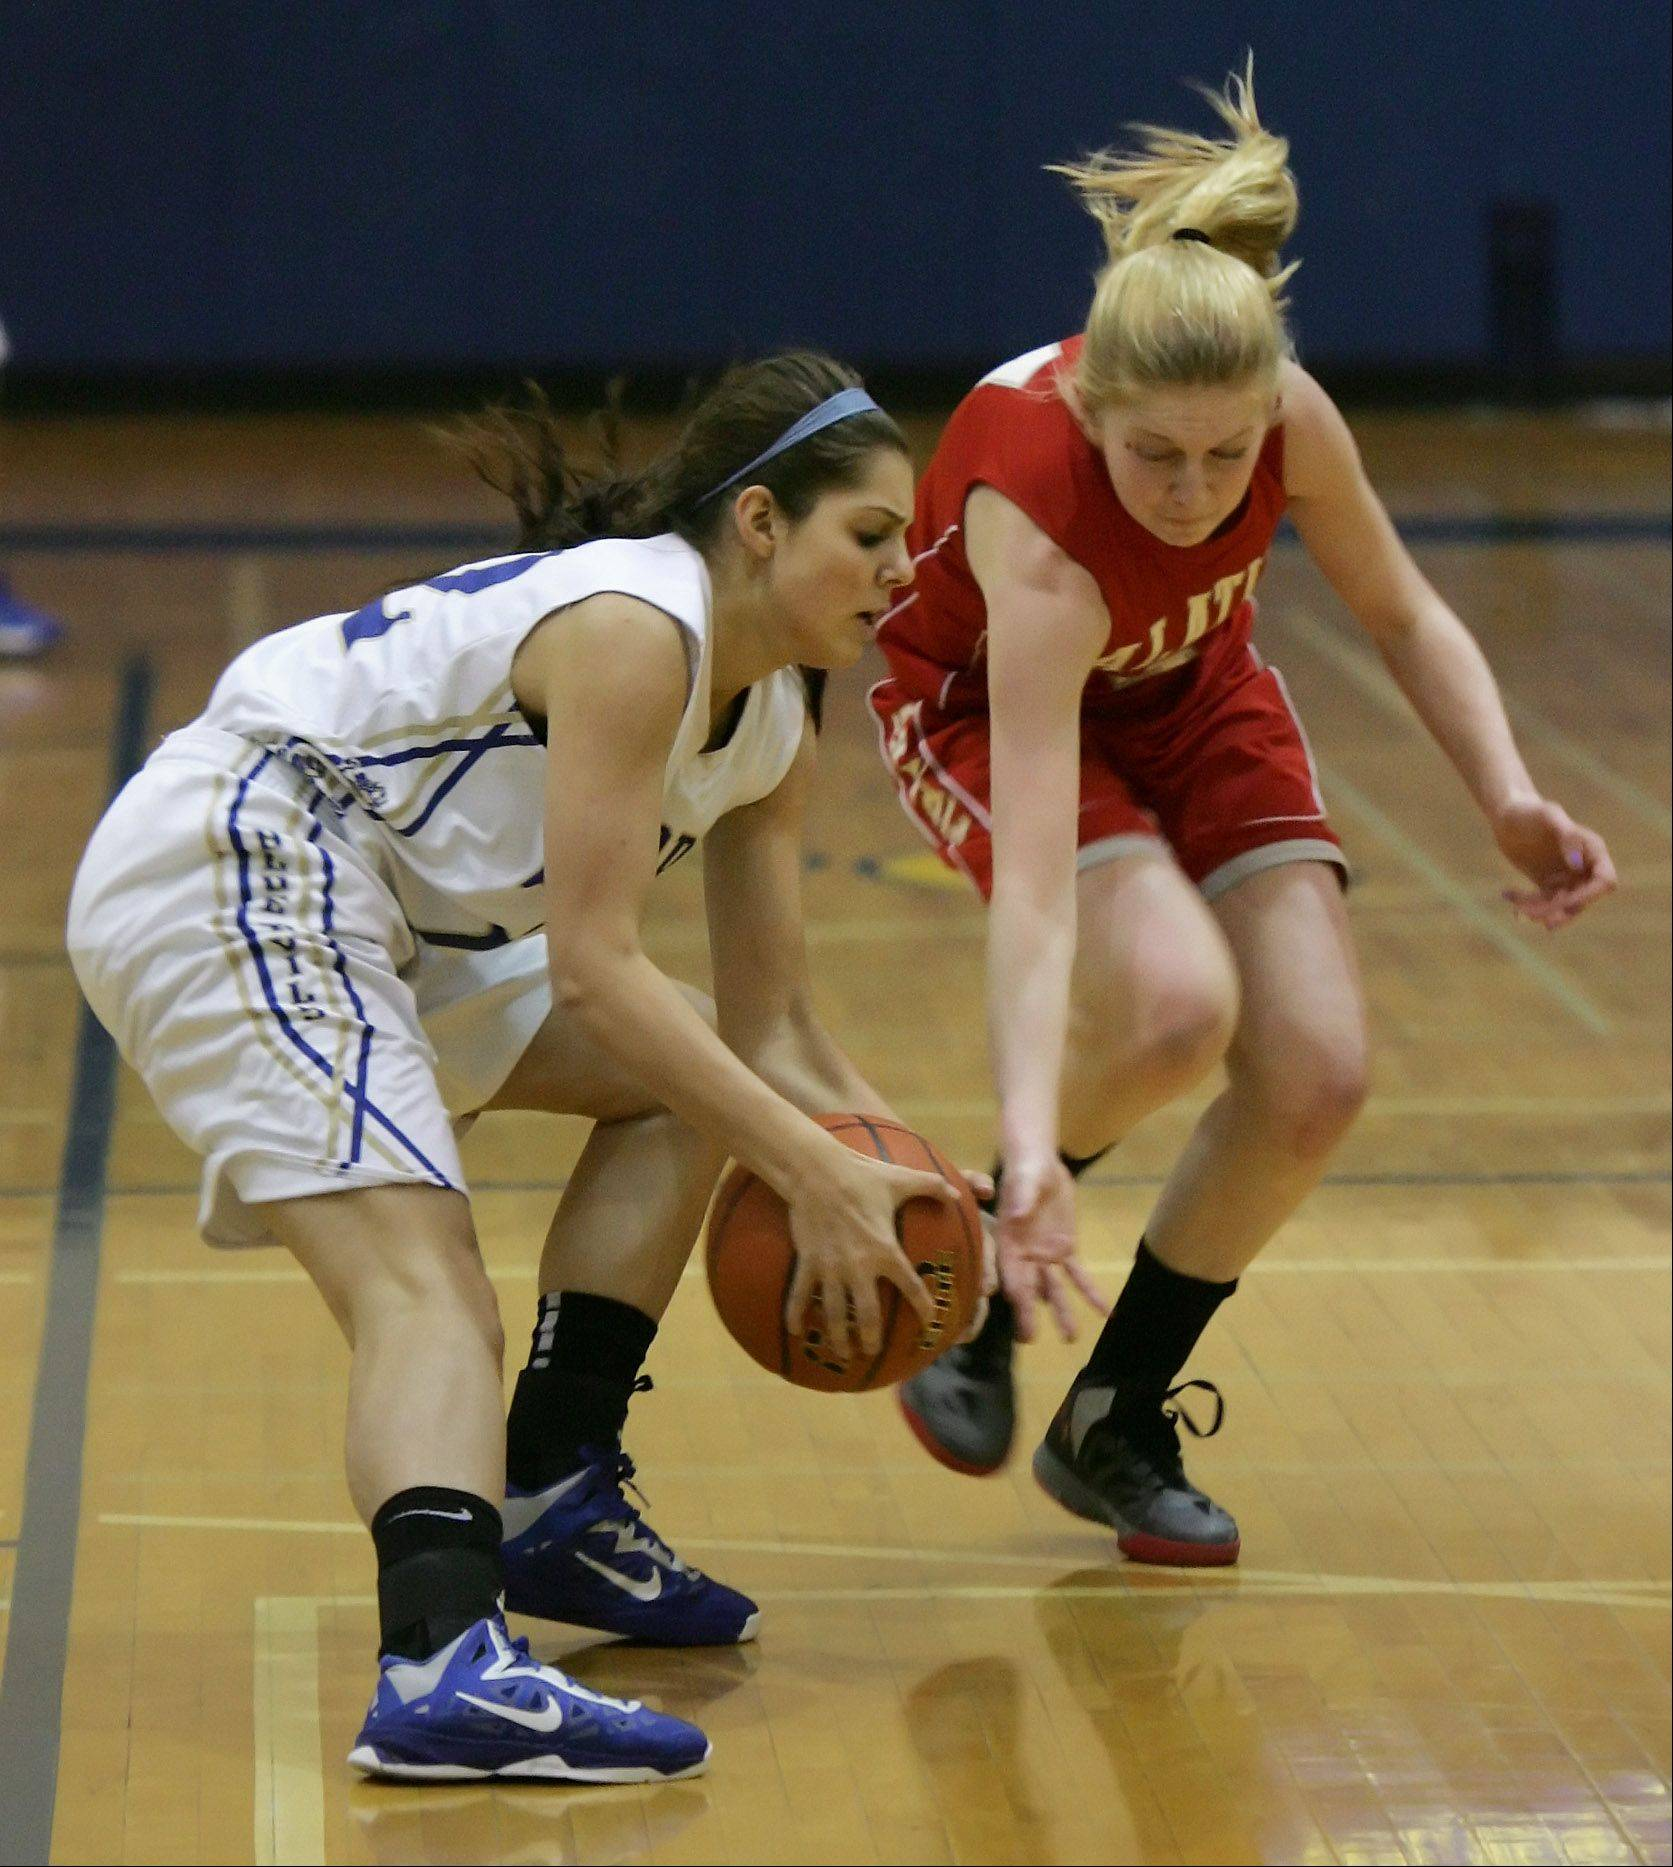 Warren guard Cassie Christie takes the ball away from Palatine guard Morgan Radtke during the Palatine at Warren girls high school basketball game in the Blue Devil Classic Thursday at Warren High School in Gurnee.